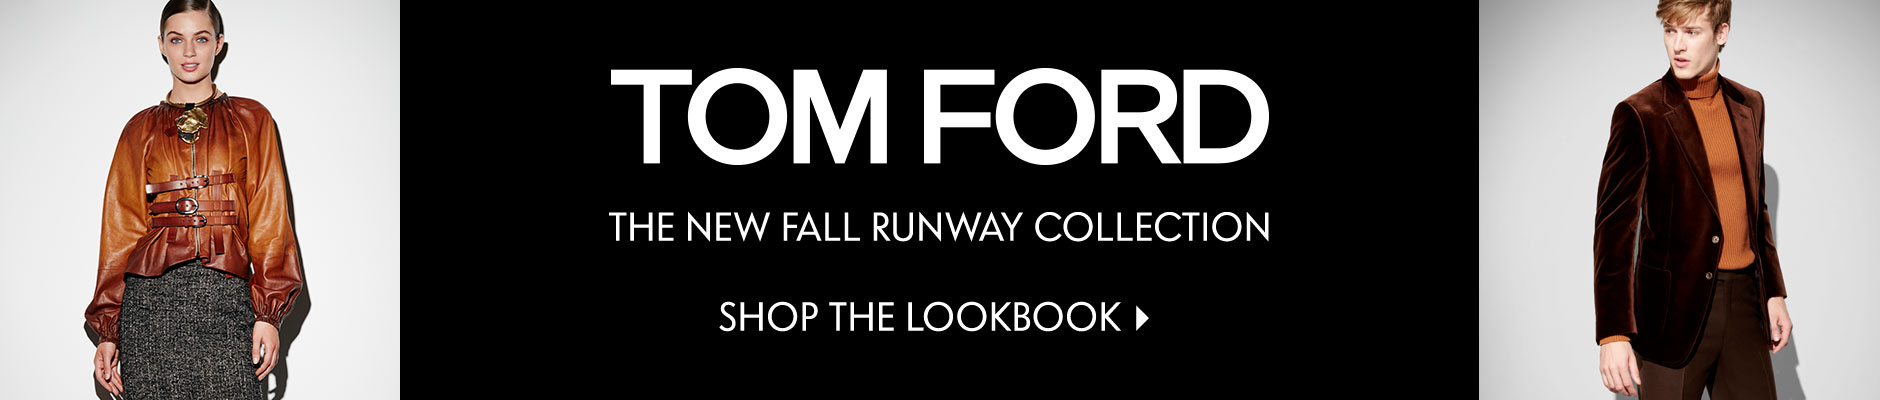 Tom Ford - The New Fall Runway Collection